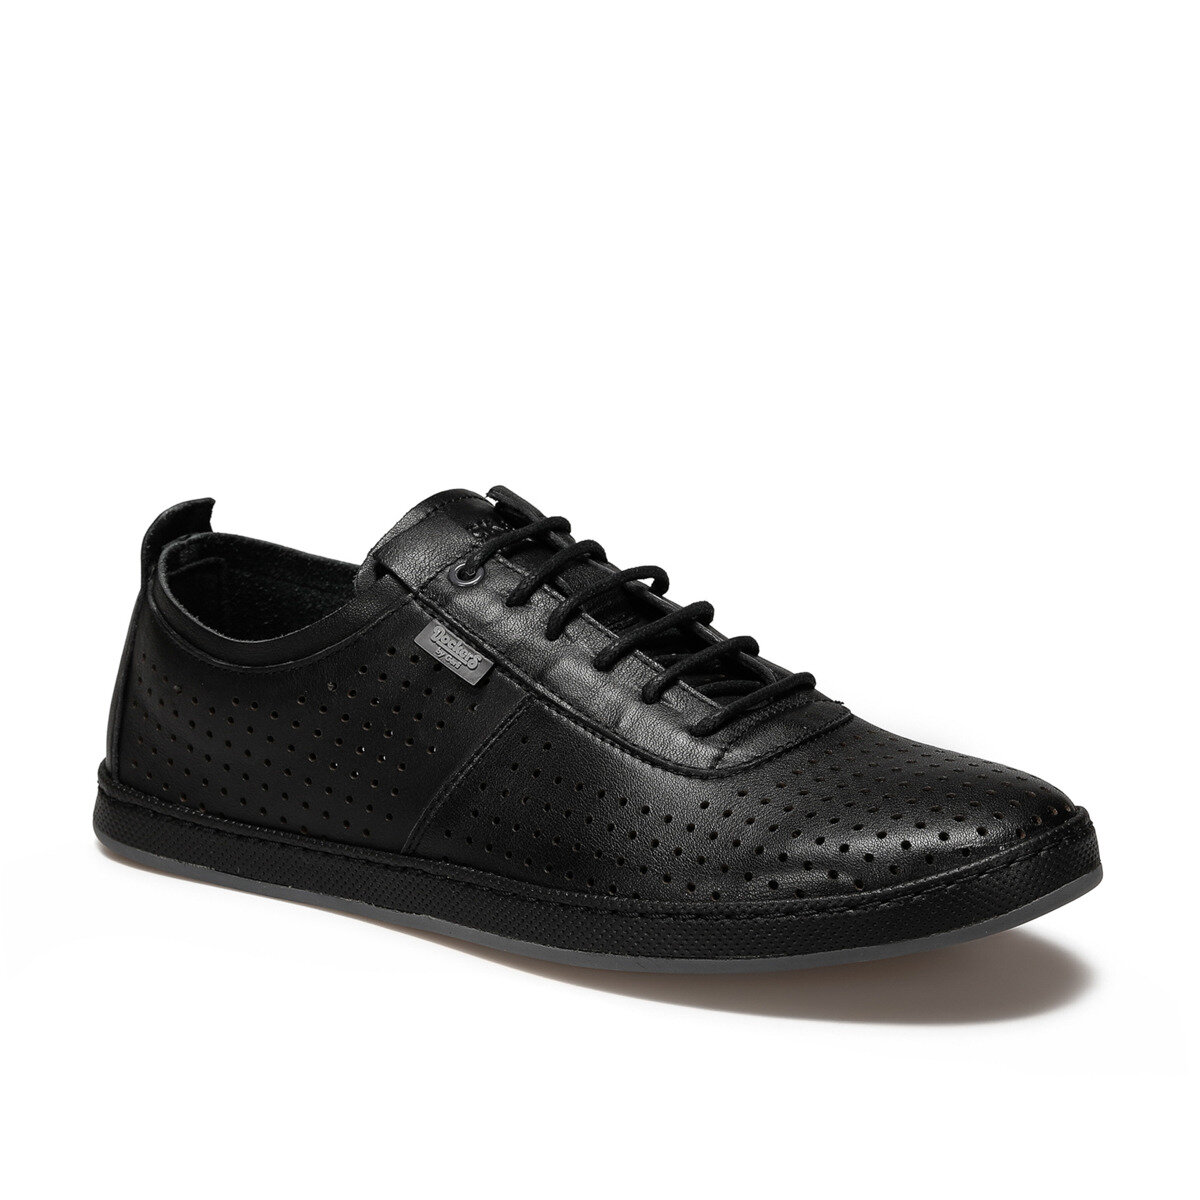 FLO 226201 Black Men 'S Comfort Shoes By Dockers The Gerle